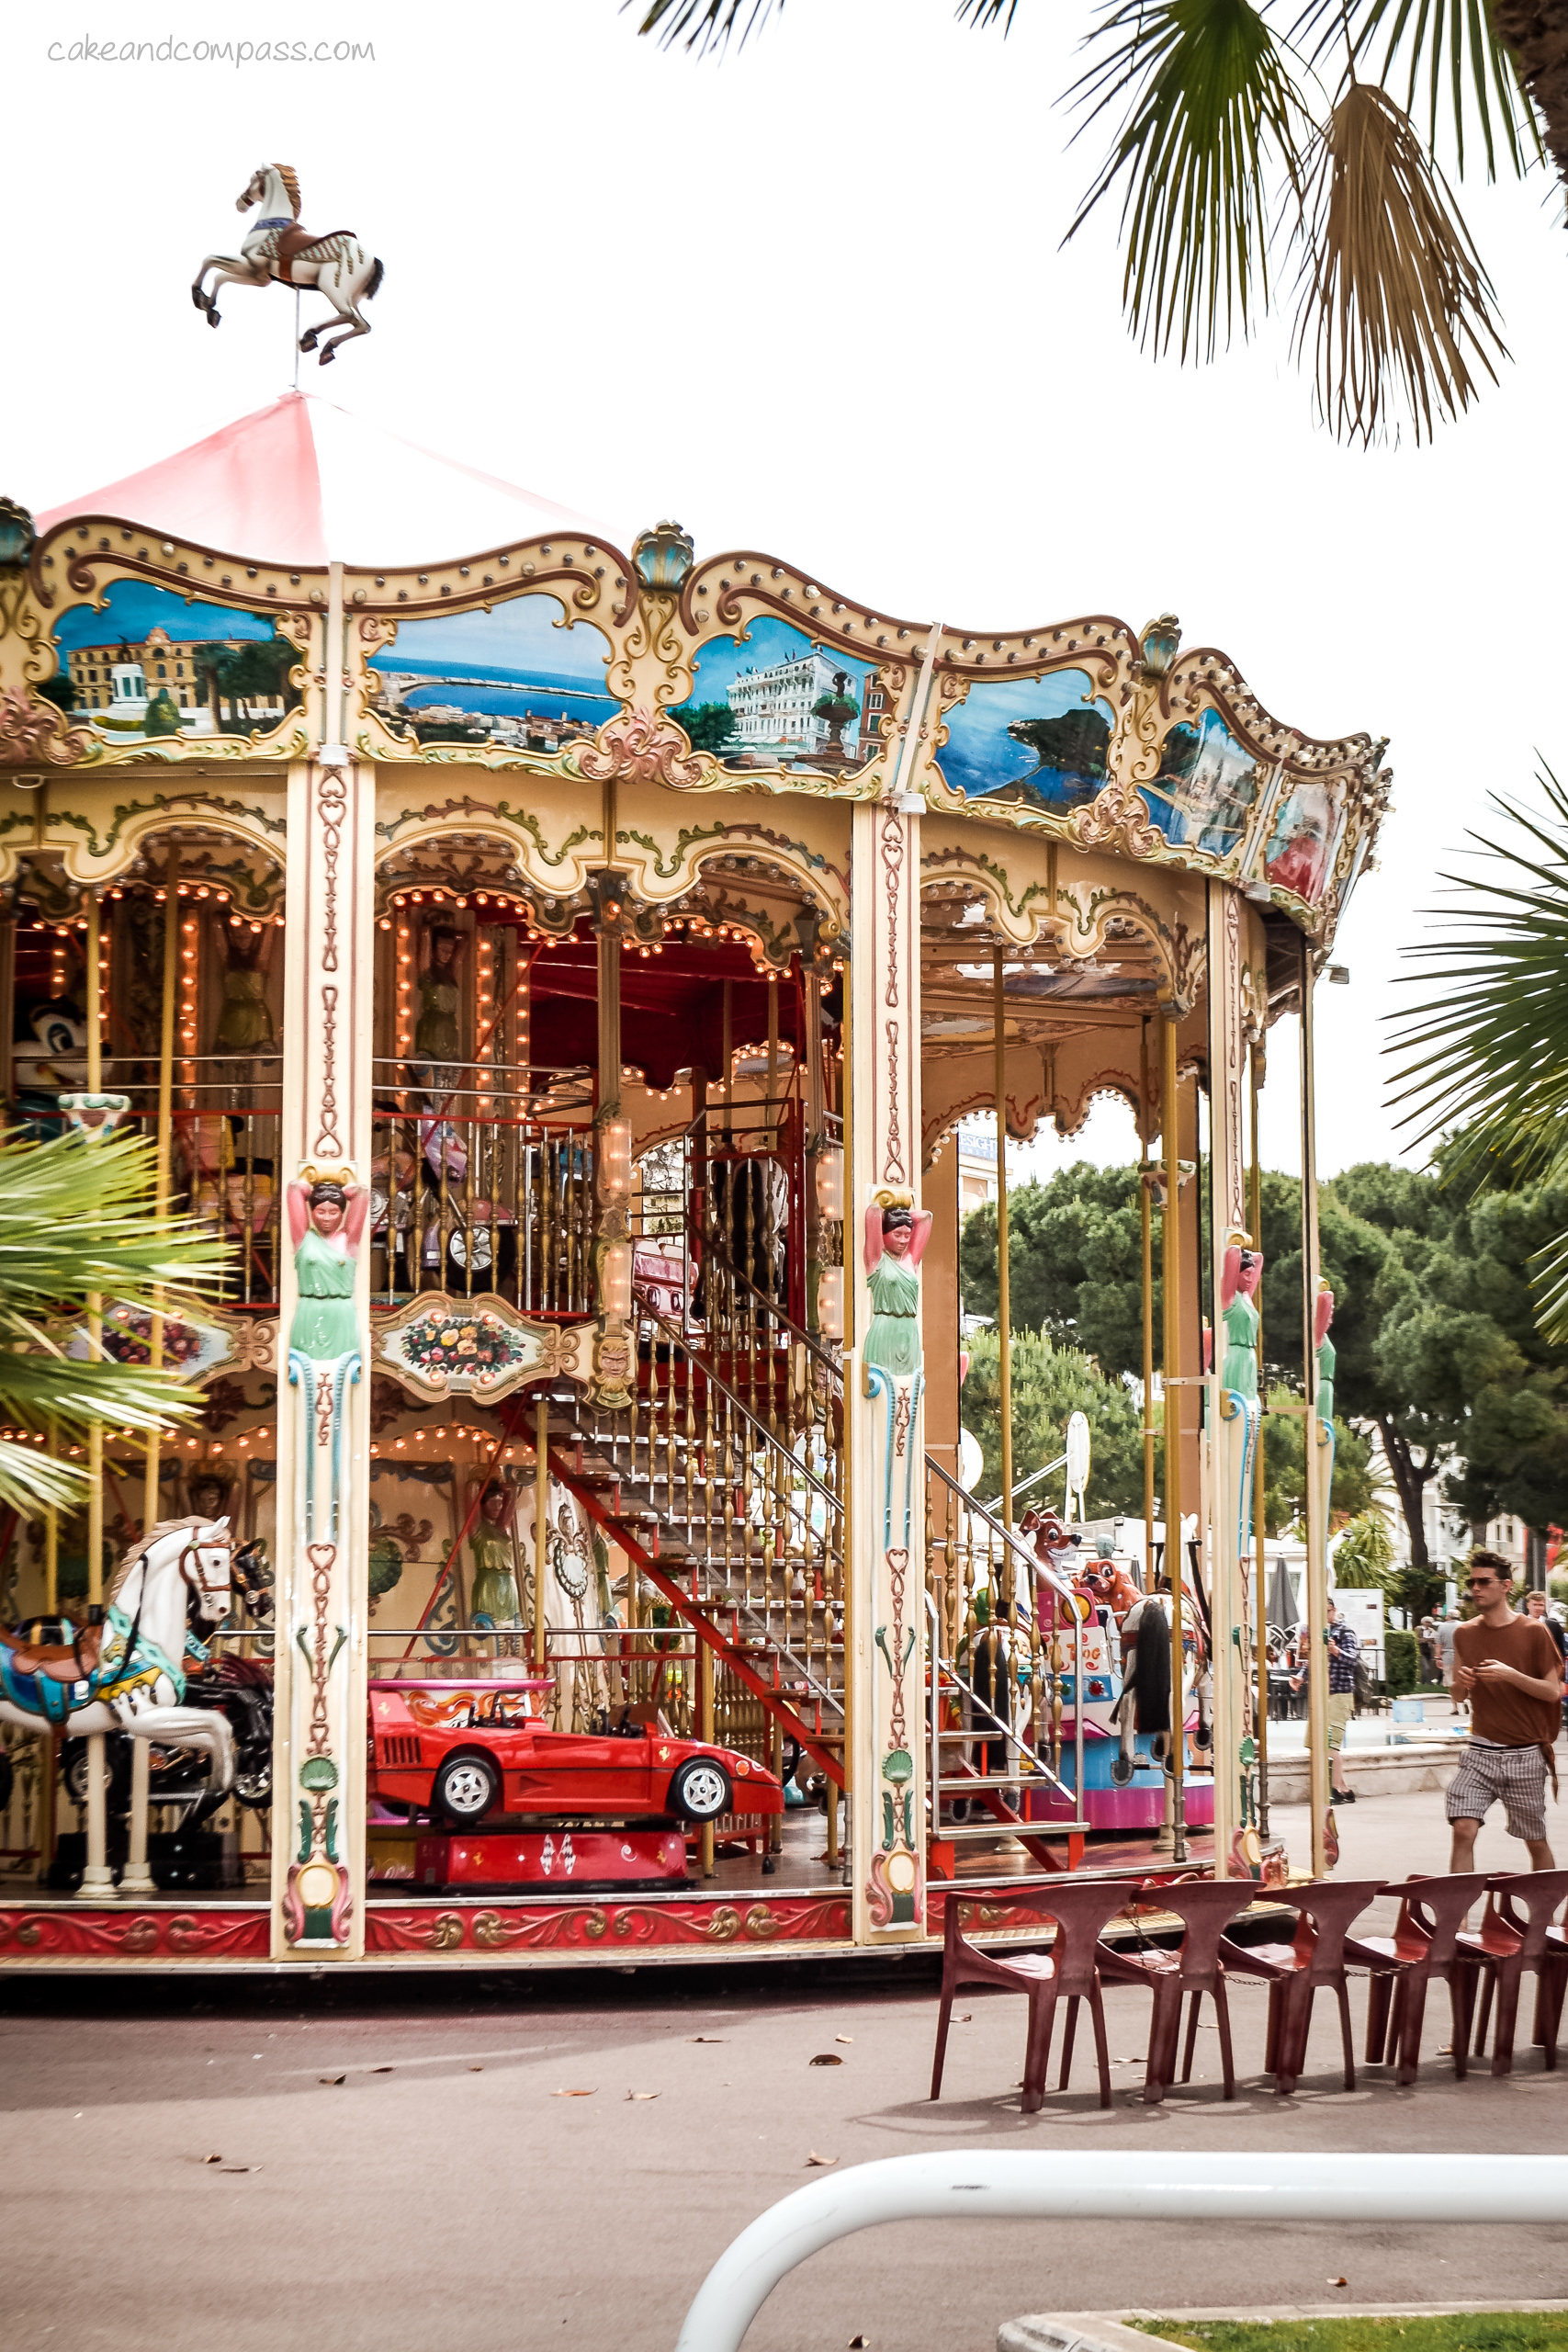 Frankreich: Karussell in Cannes